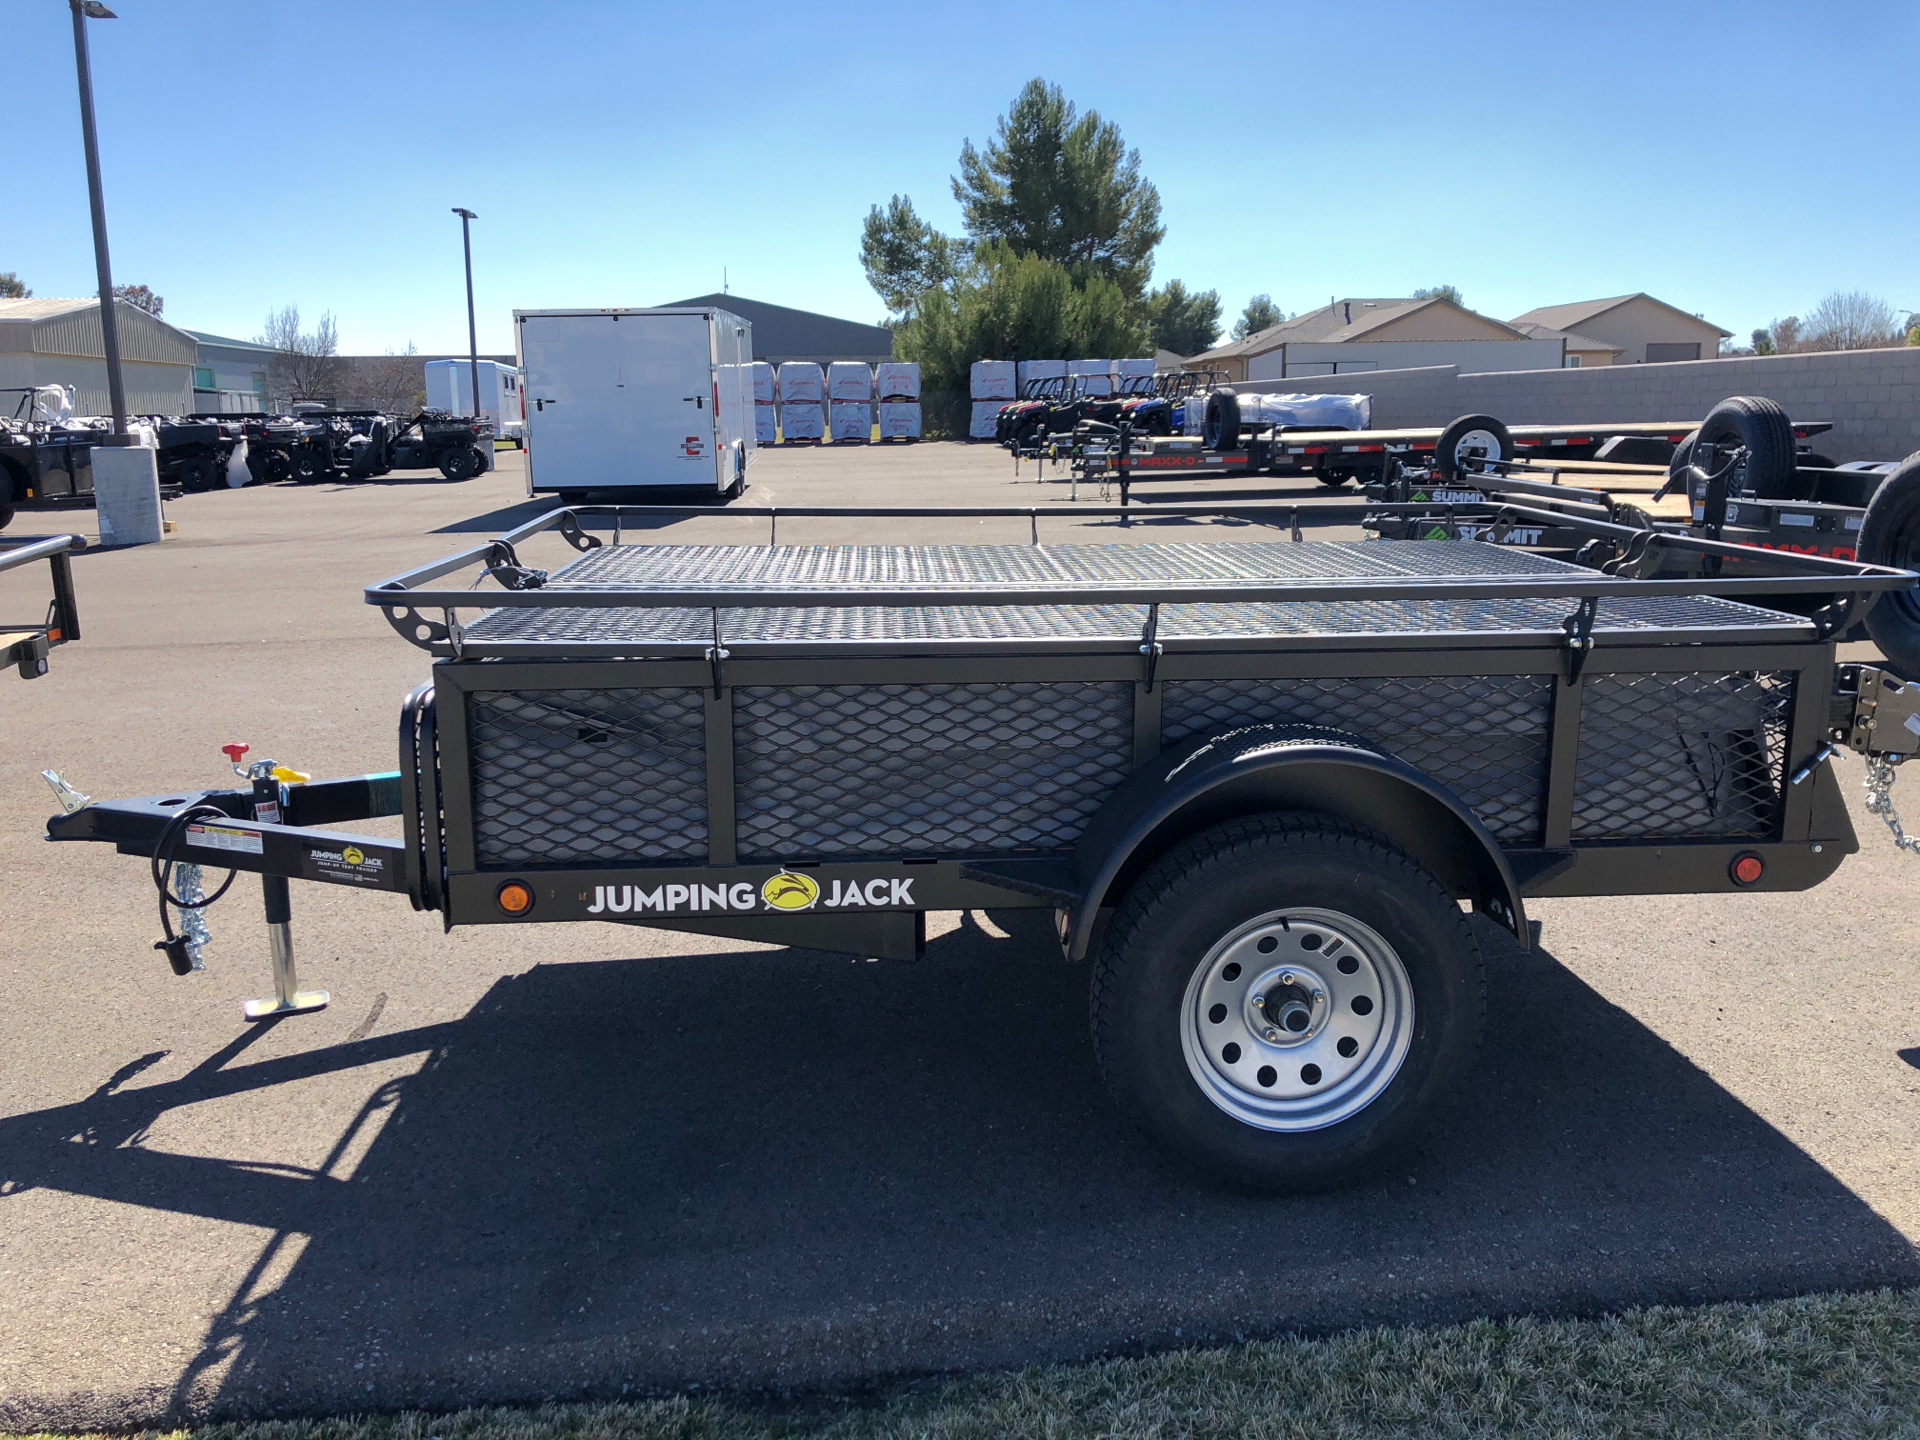 2021 JUMPING JACK TRAILERS  6' X 8' UTILITY W/ SPARE in Paso Robles, California - Photo 2